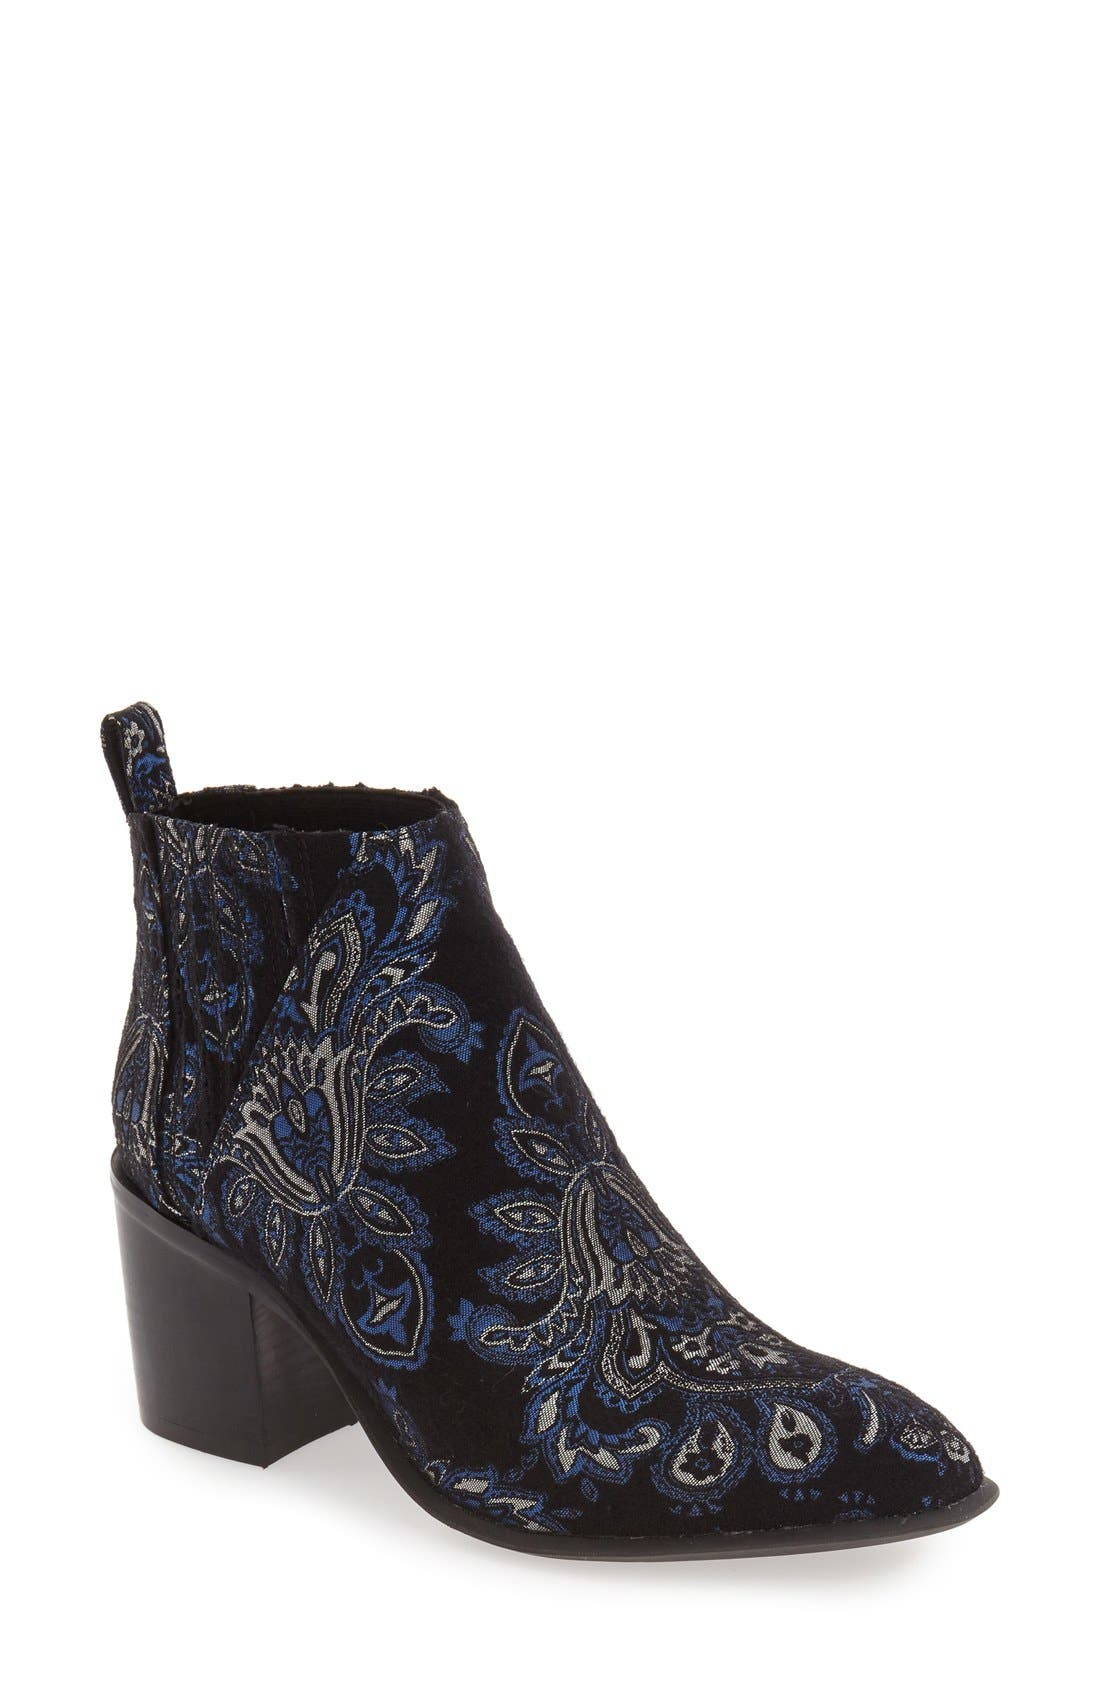 Alternate Image 1 Selected - Jeffrey Campbell 'Viggio' Brocade Bootie (Women)